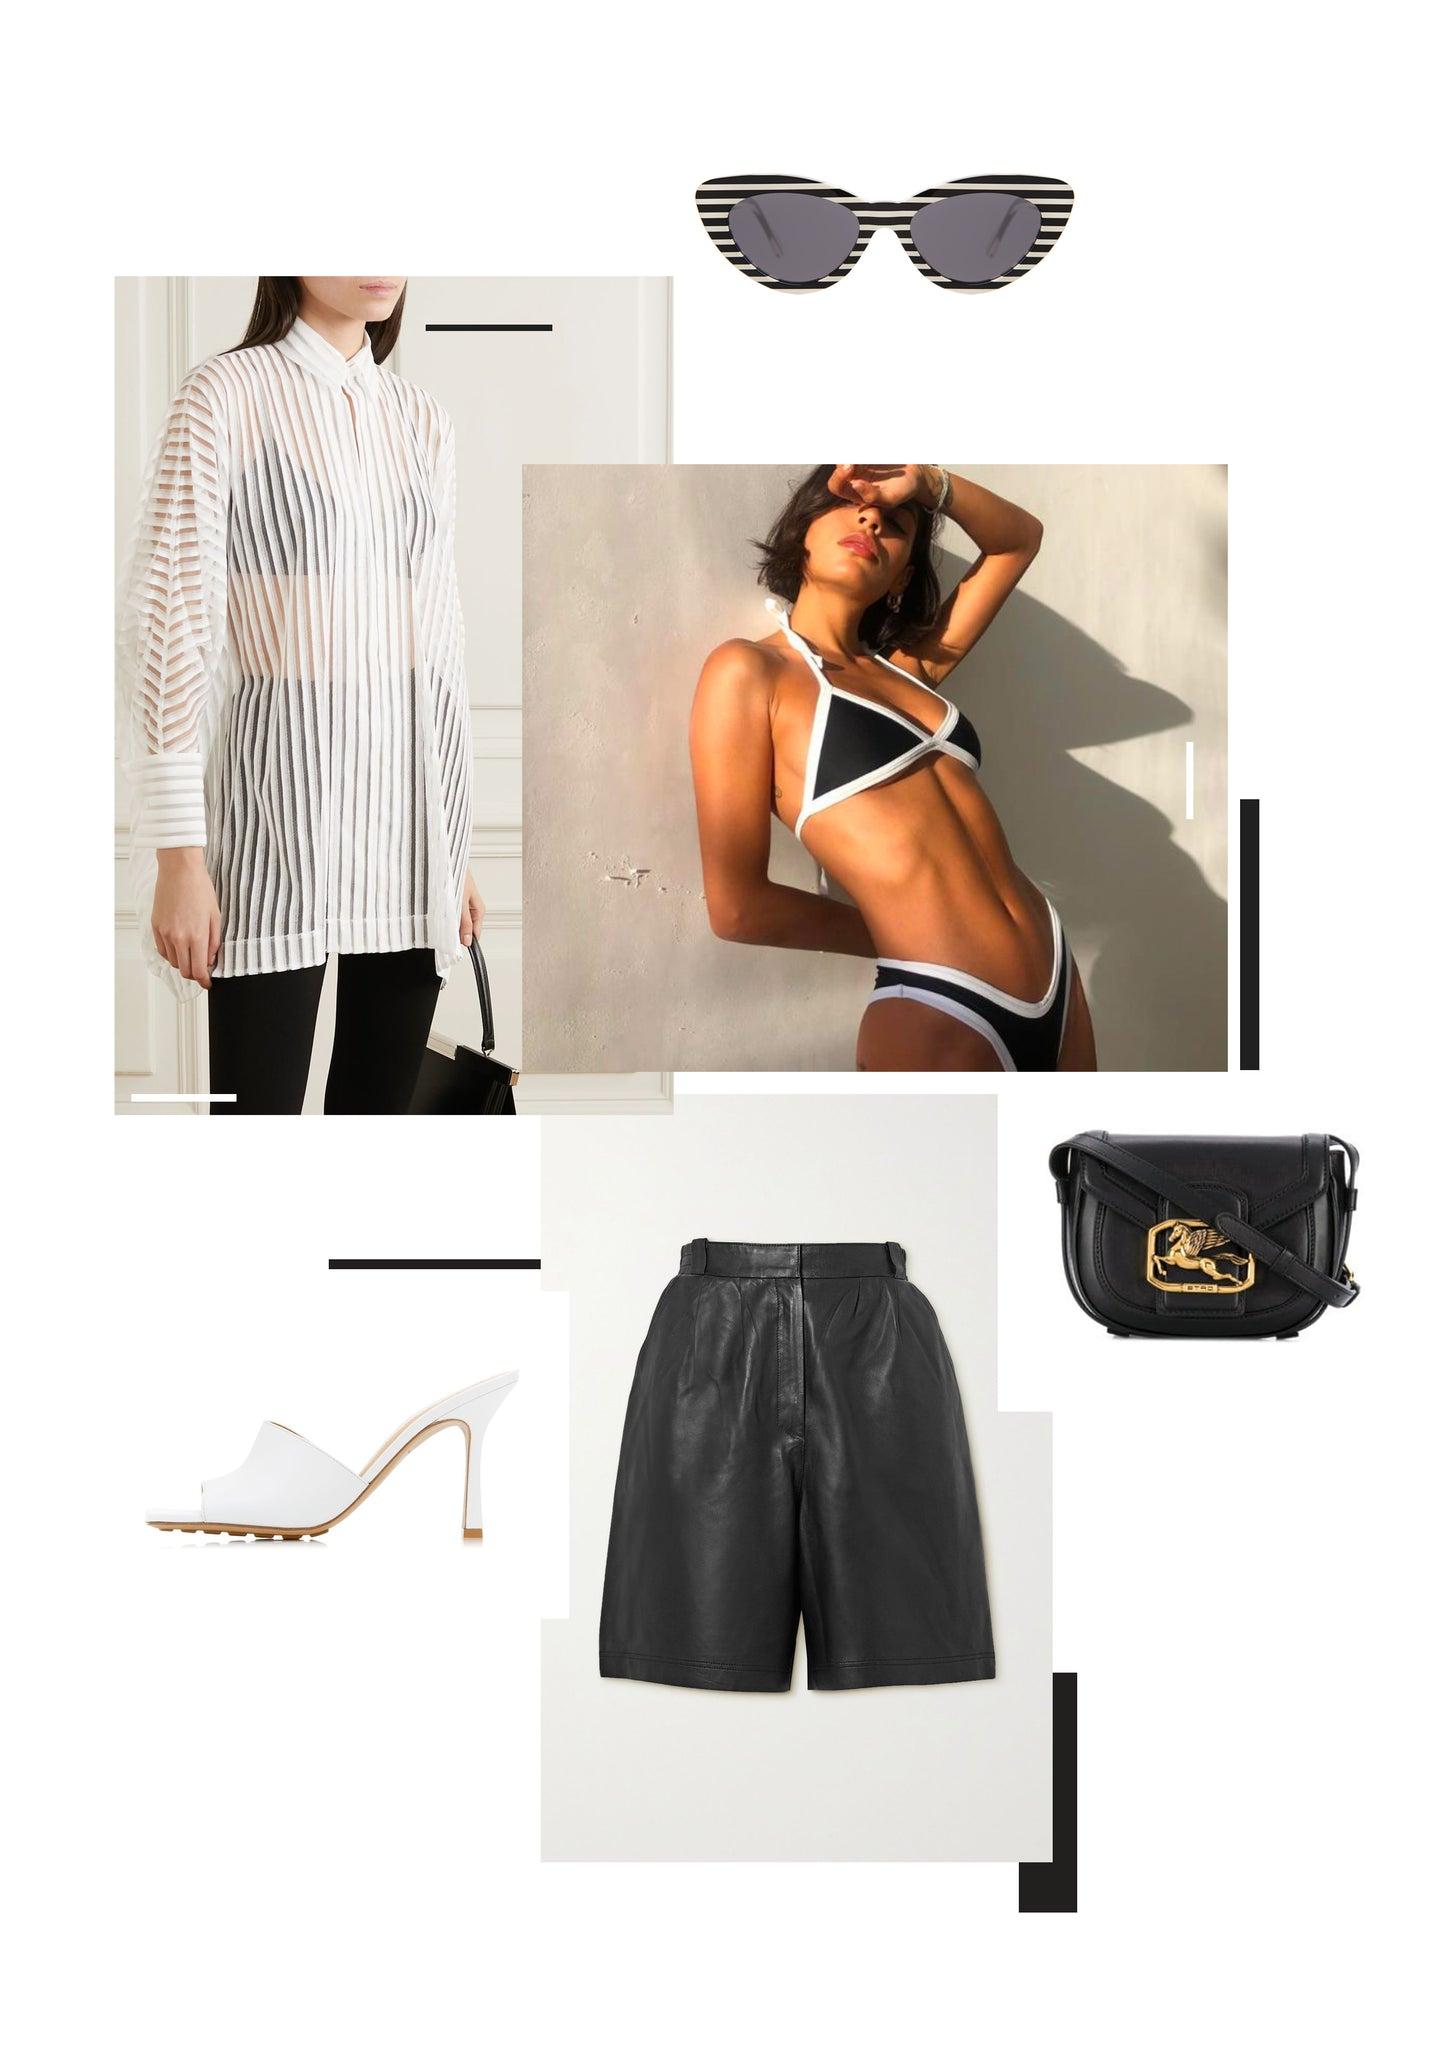 Date Night swimwear outfit inspo